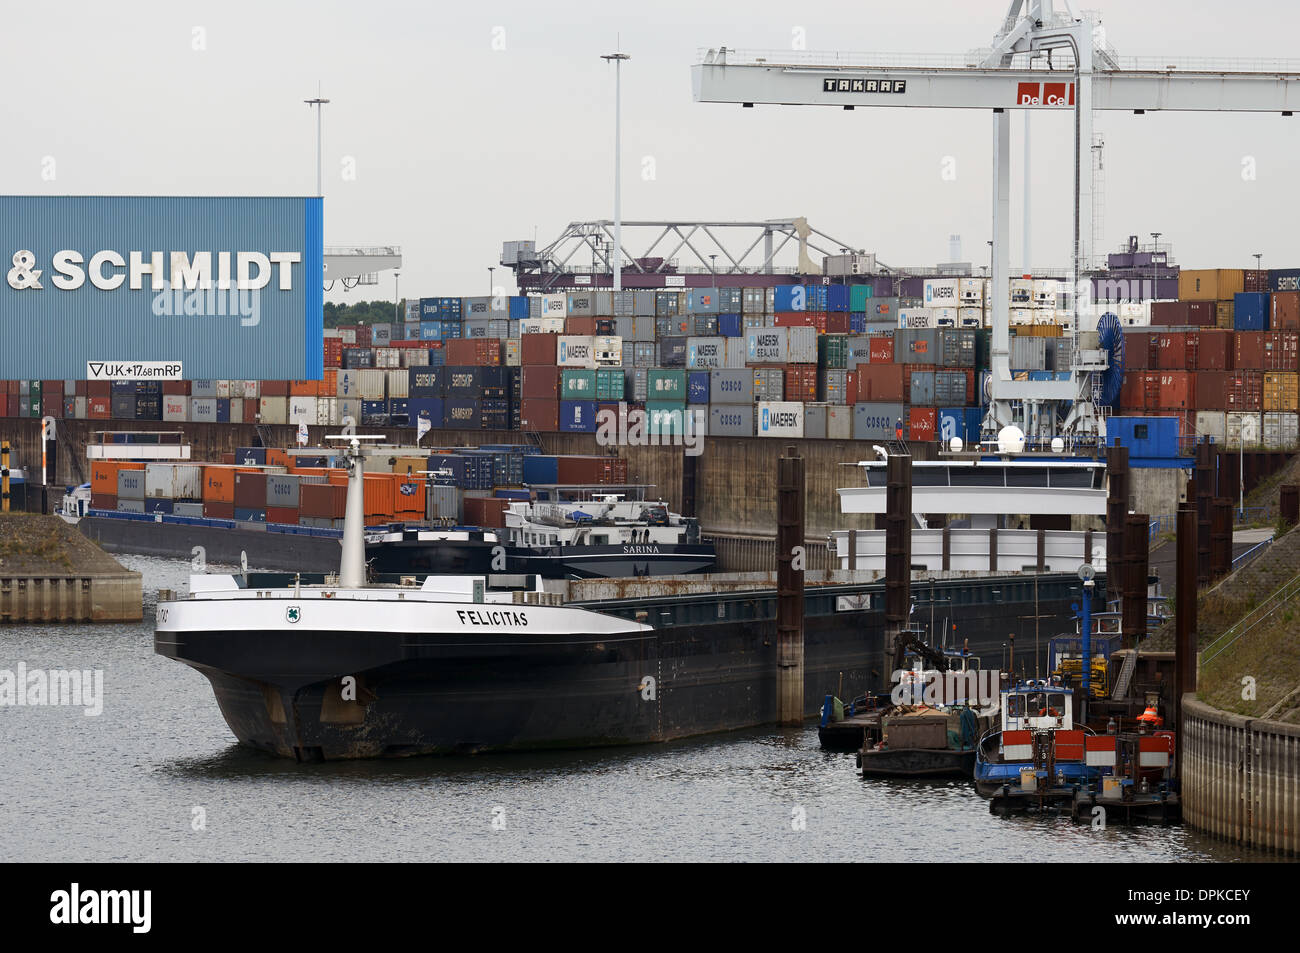 Duisport container terminal, Duisburg, Germany. - Stock Image